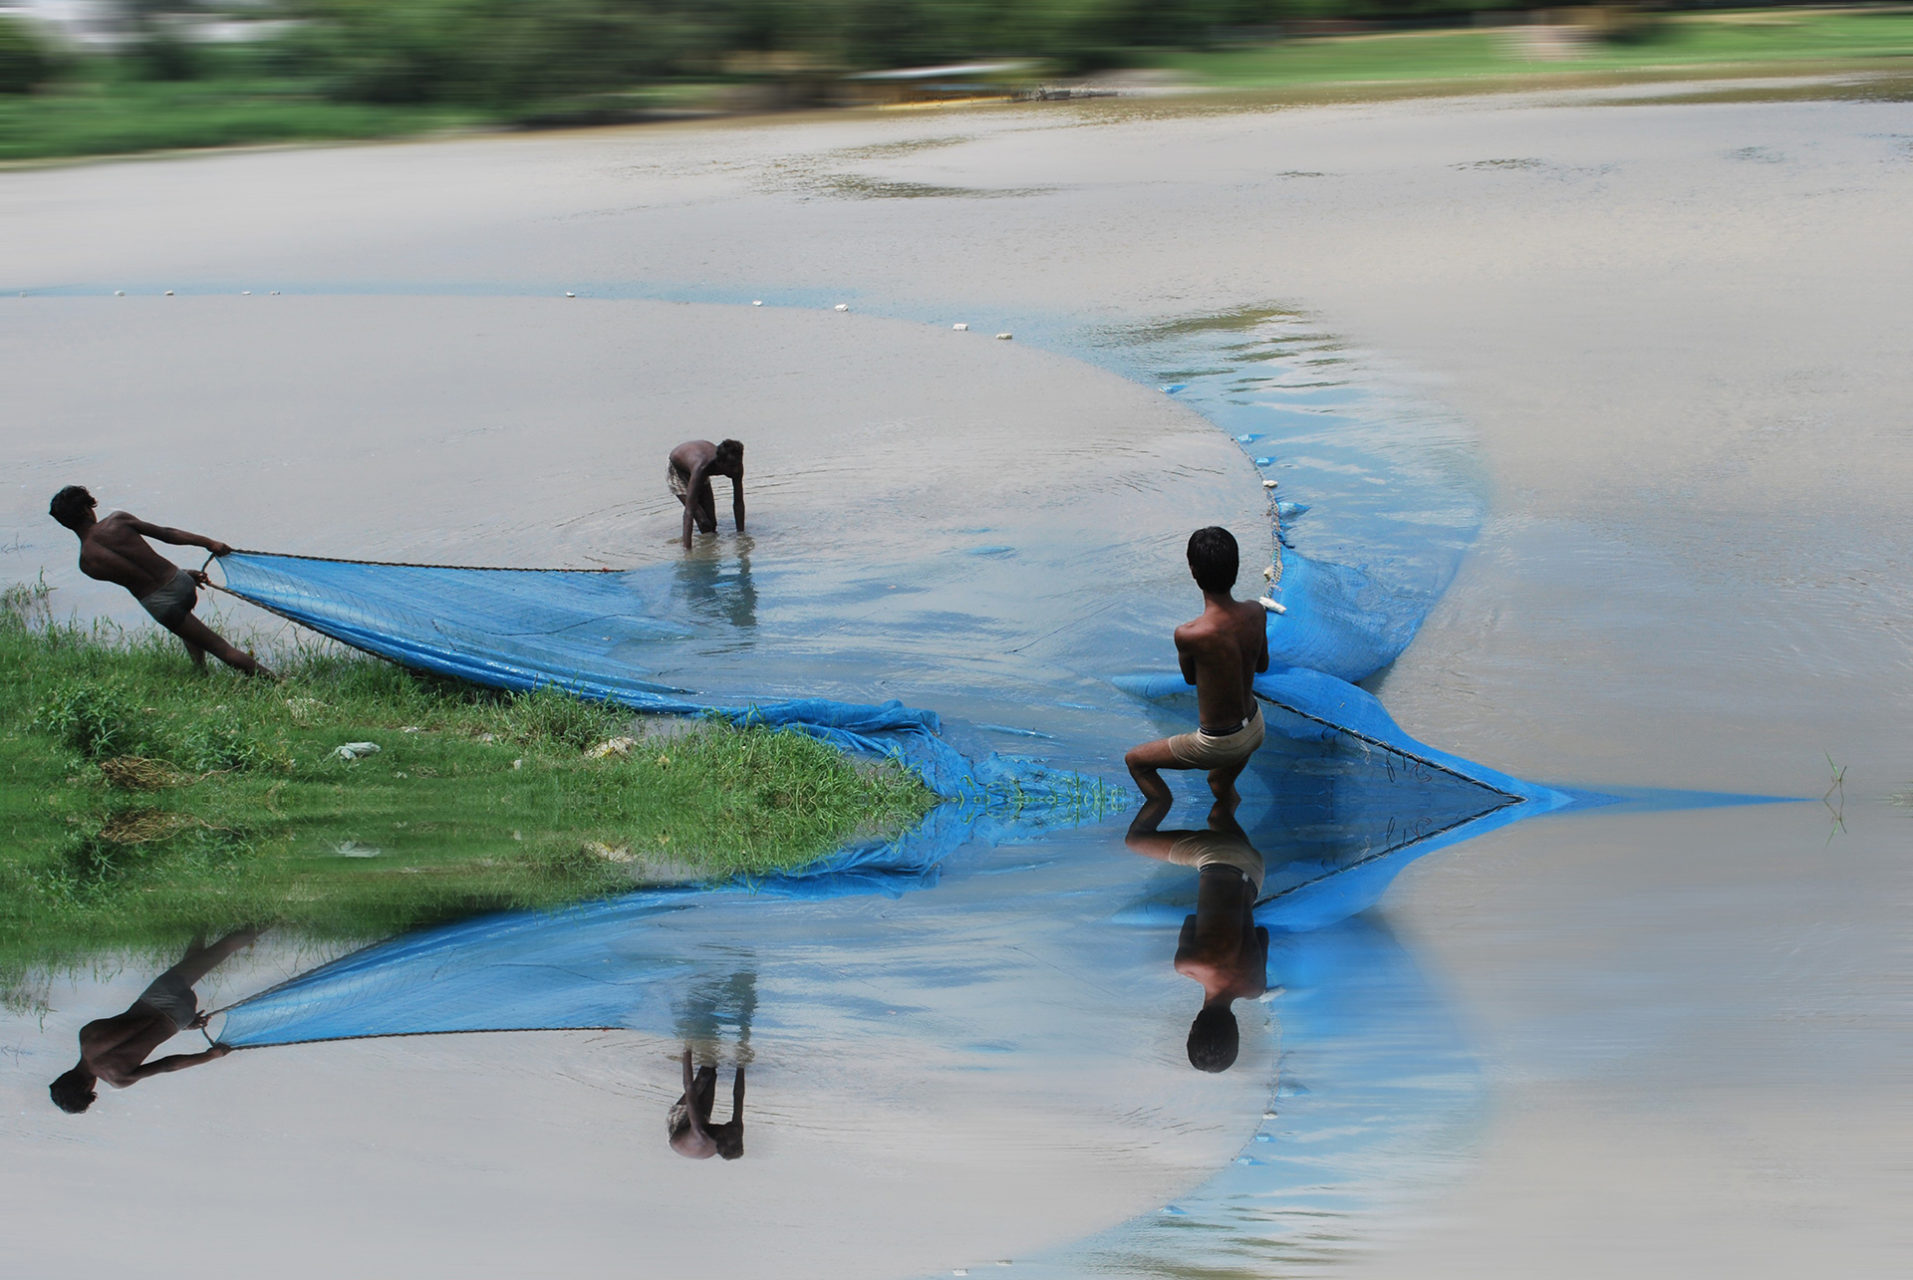 Two men pull a blue fishing net out of the water